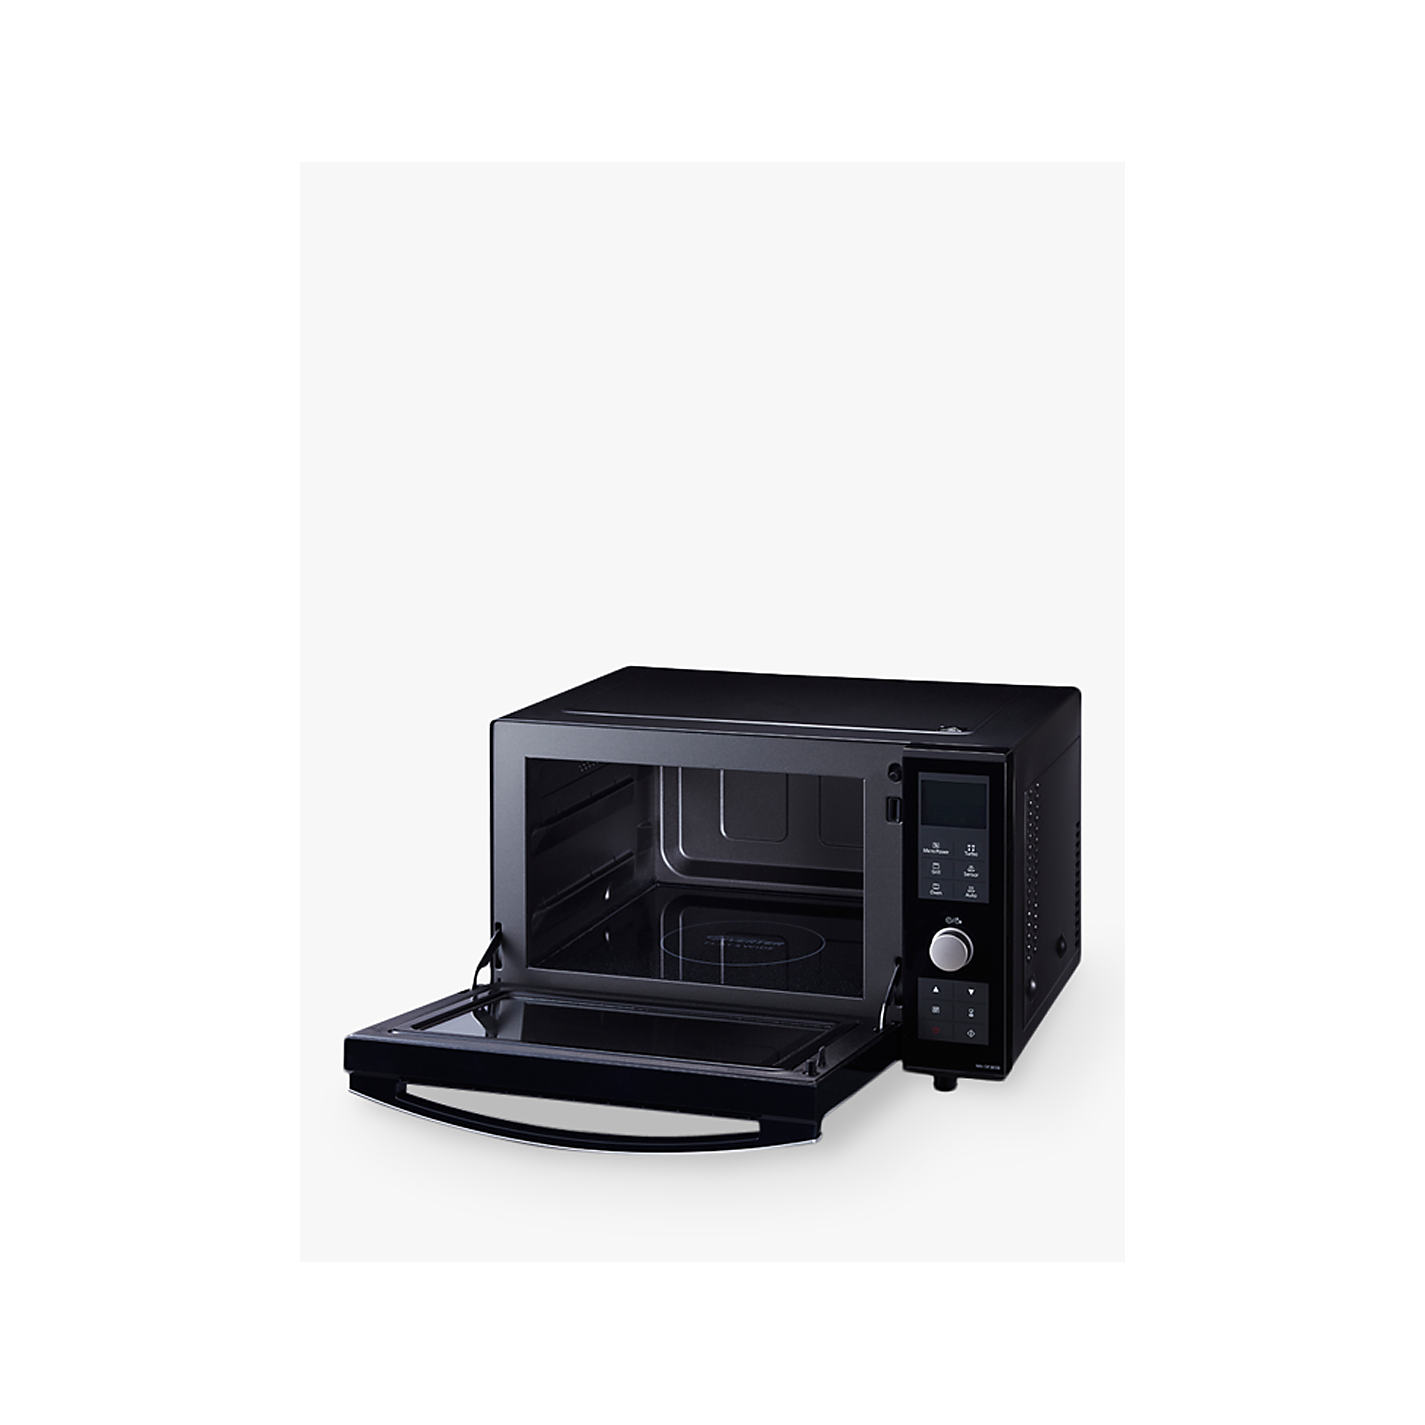 Panasonic Nn Df386bbp Freestanding 3 In 1 Combination Microwave Oven With Grill